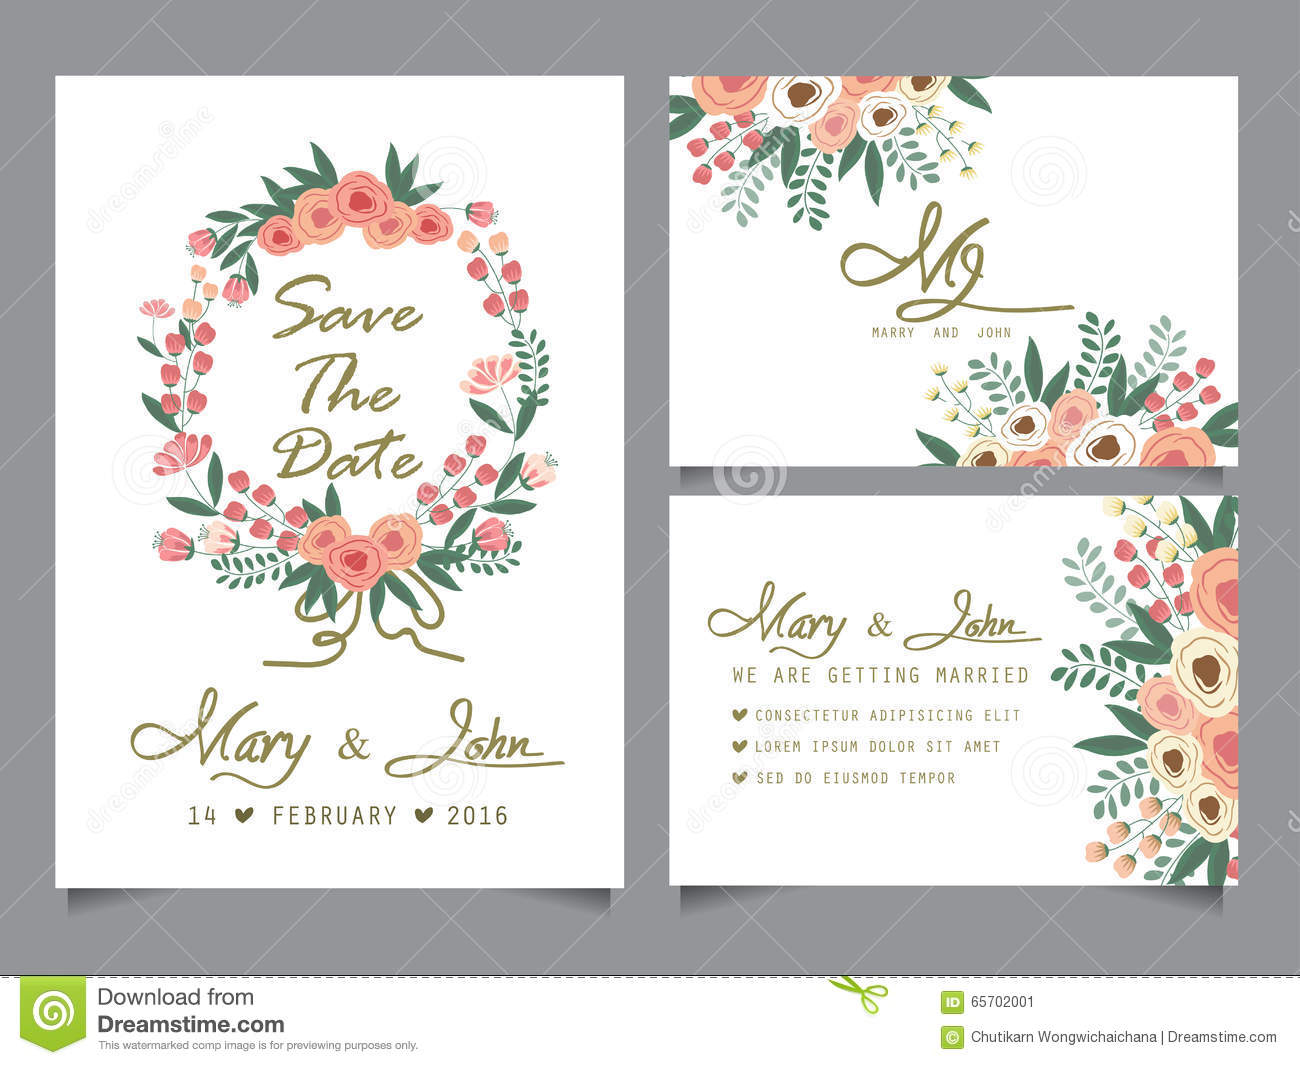 We created for wedding invitation islamic templates for free word, and send to give your event, with the birthday party planning your favorite. Wedding Invitation Card Template Stock Vector Illustration Of Background Brochure 65702001